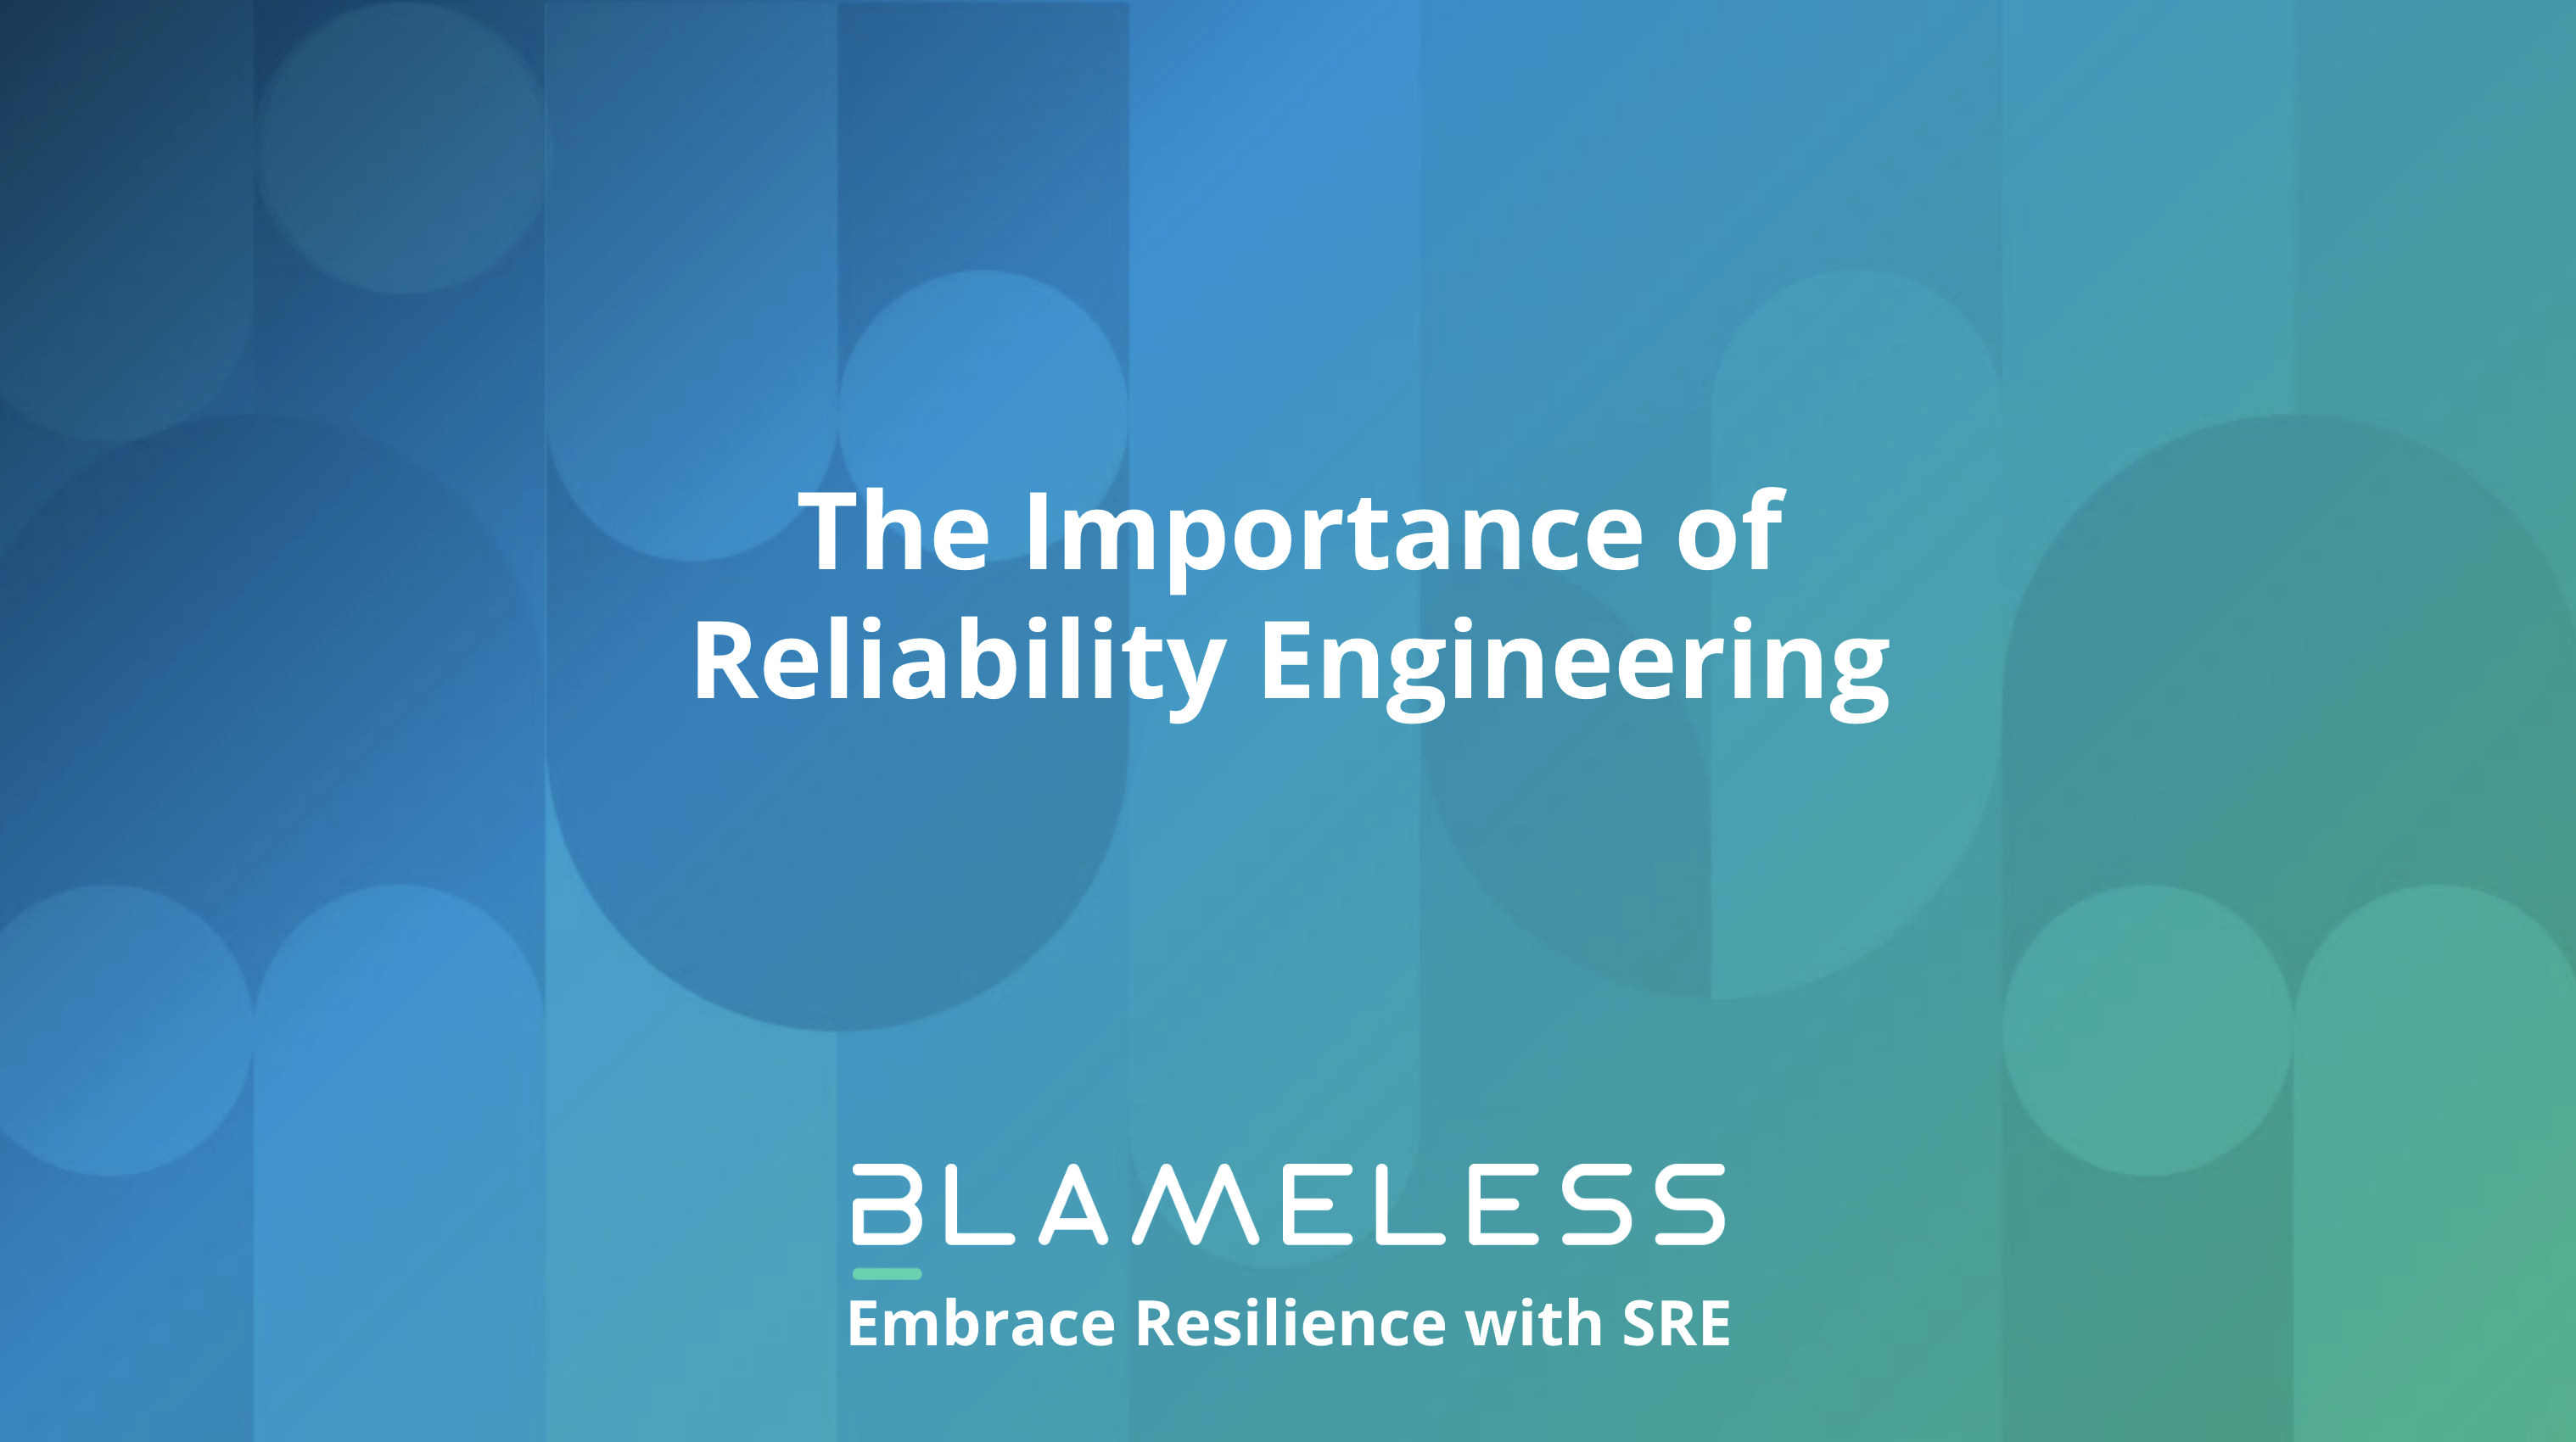 The Importance of Reliability Engineering